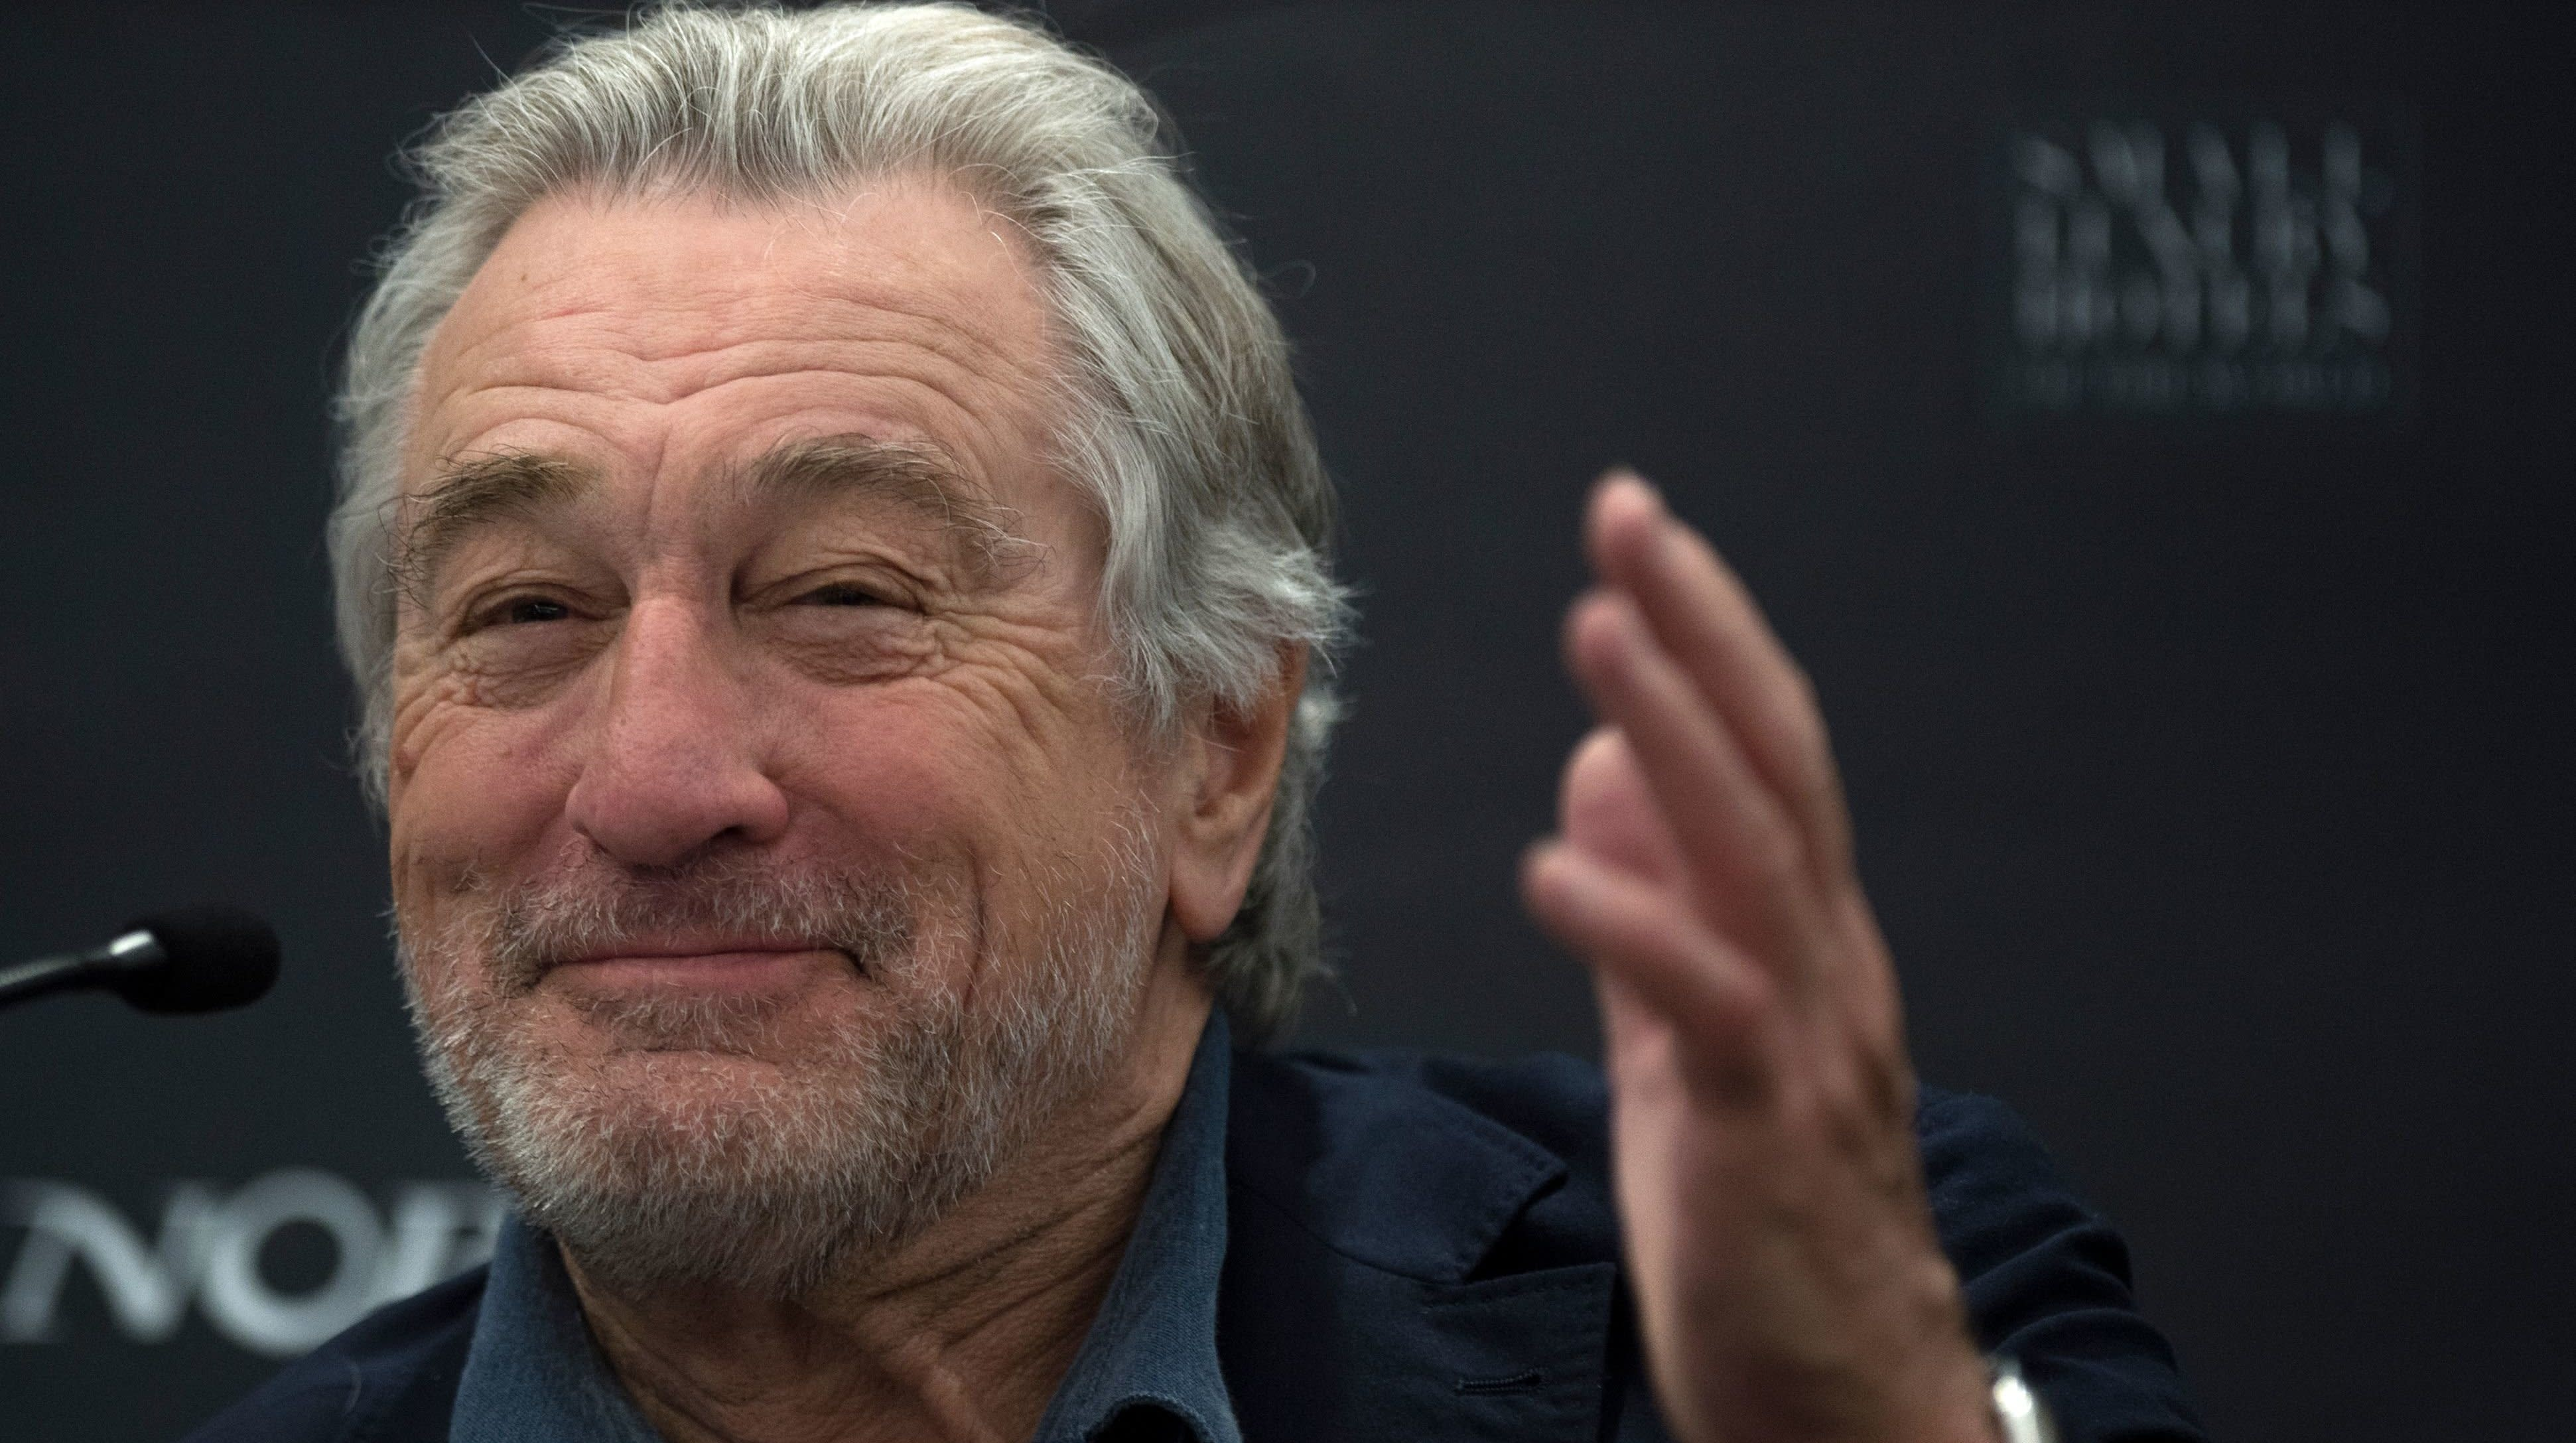 Robert De Niro Bans Trump From Every Nobu Restaurant